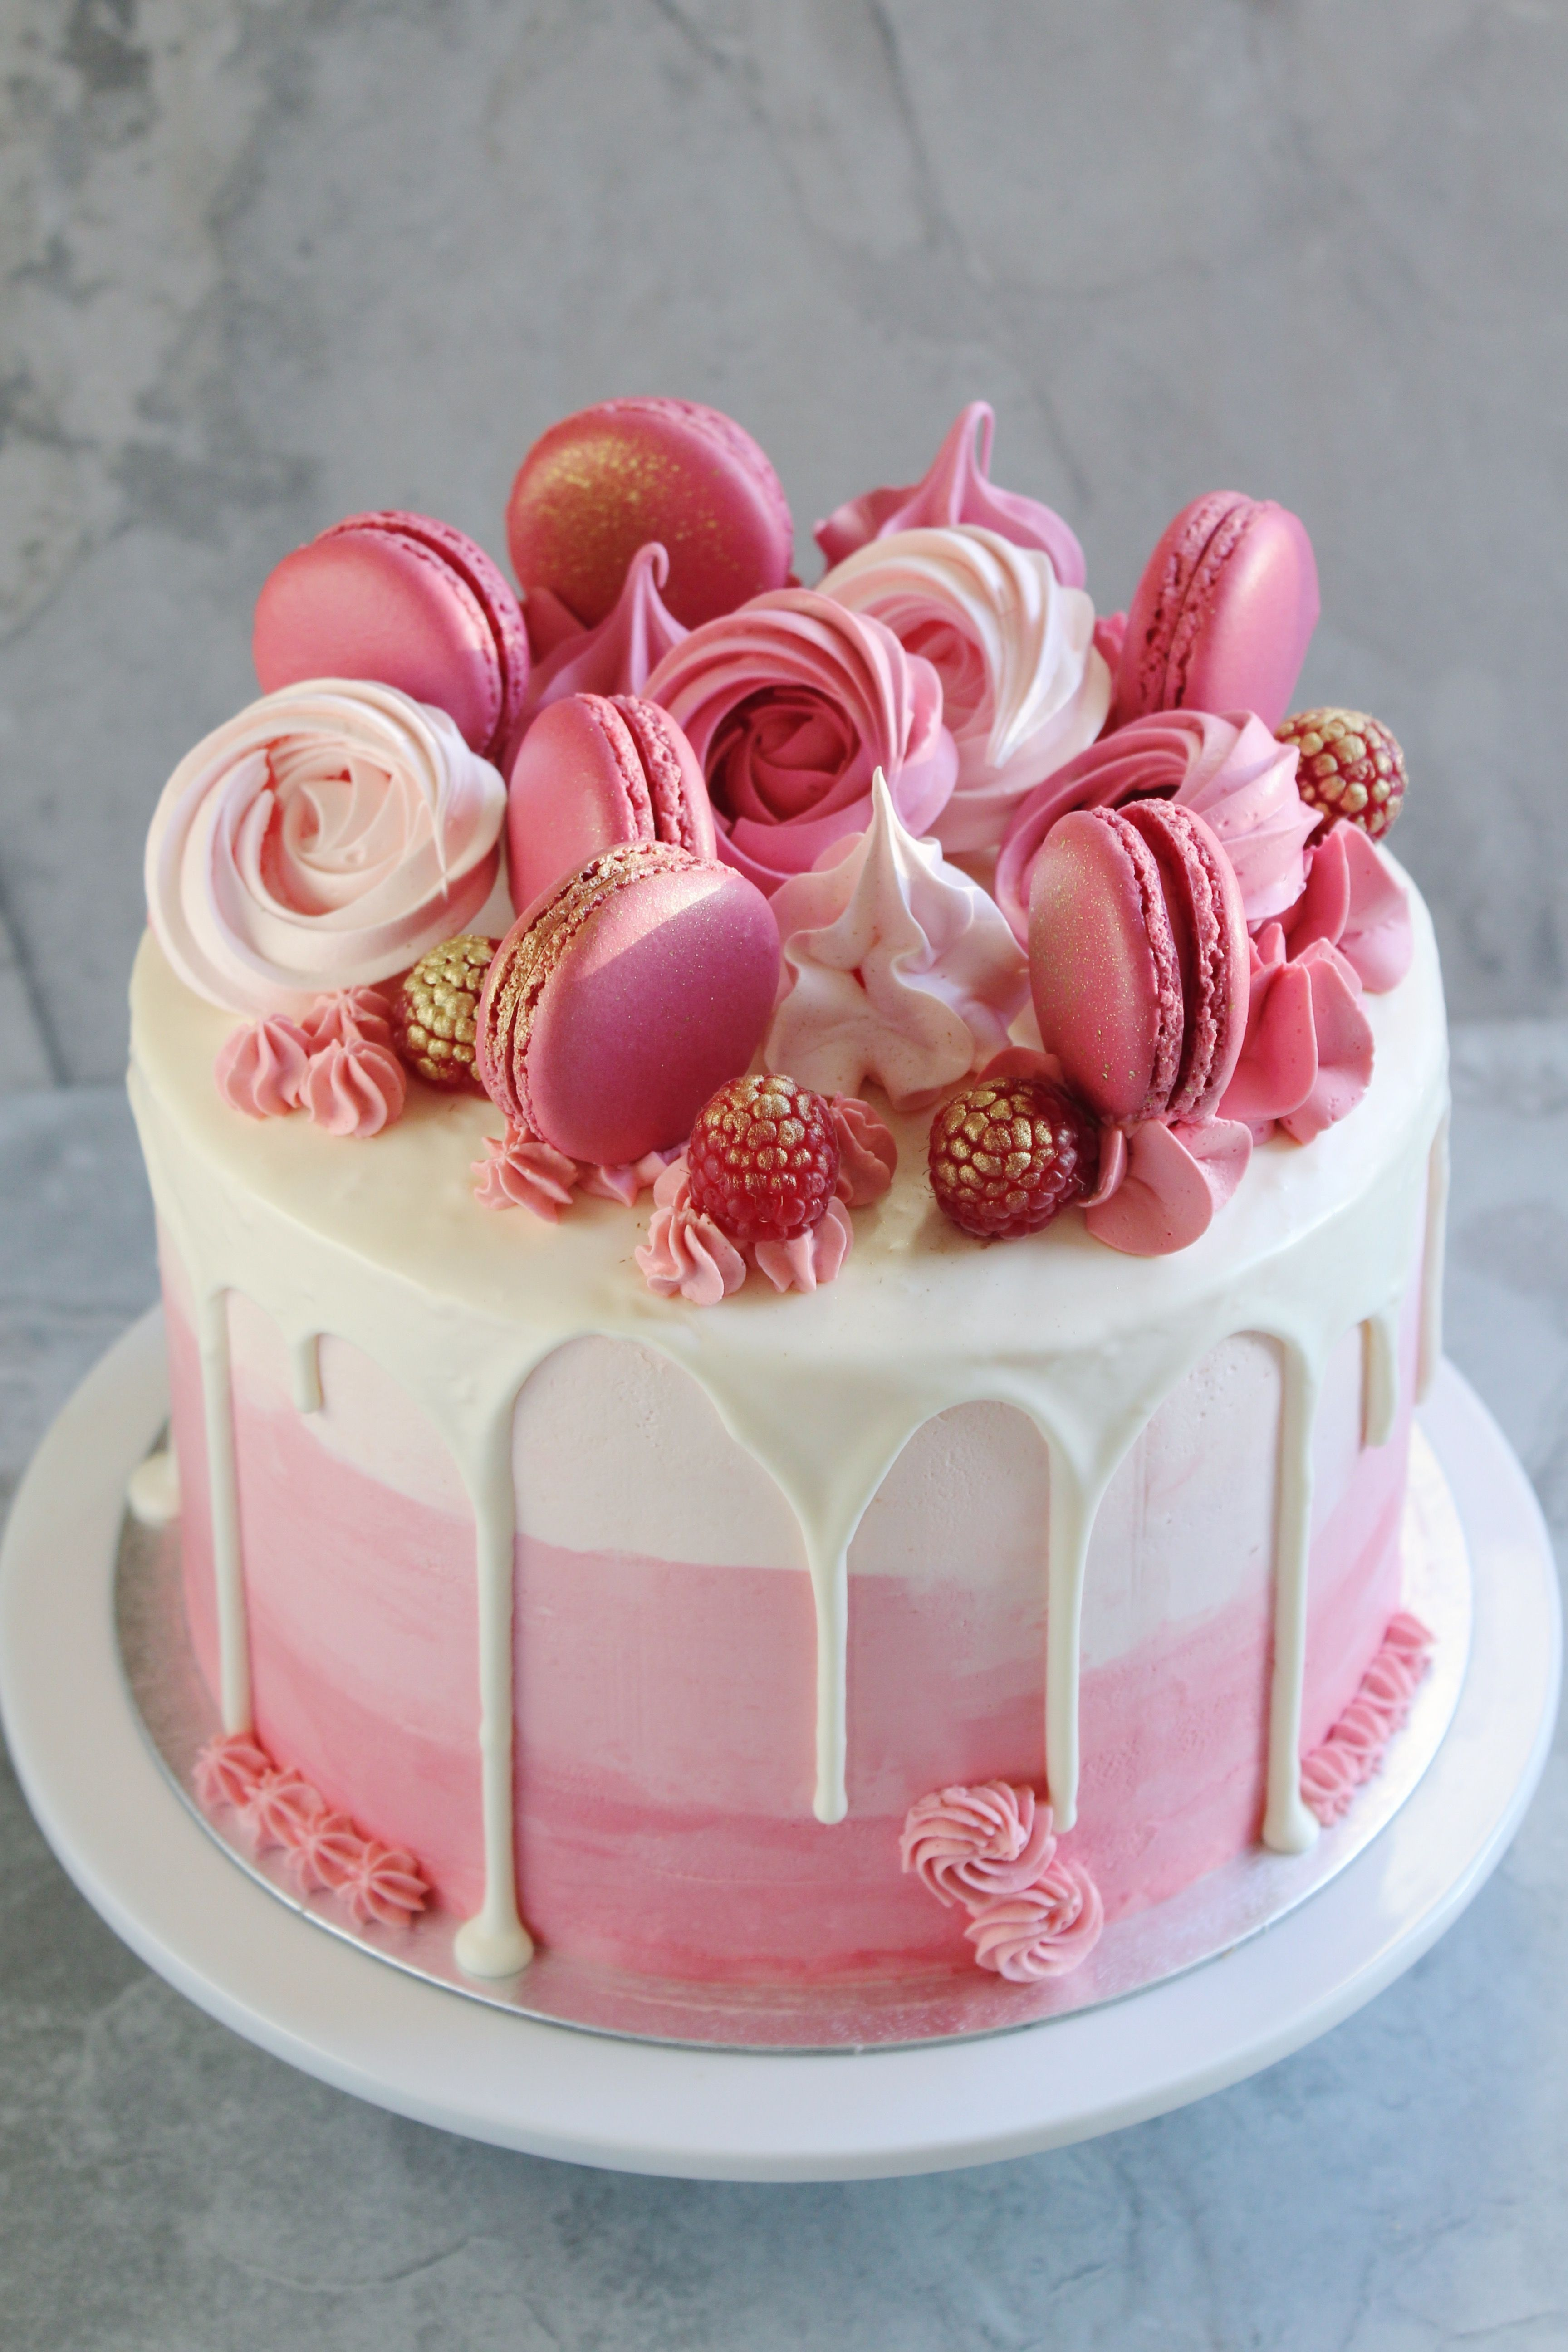 Its A Girl Pink Baby Shower Cake With Ombr Buttercream,